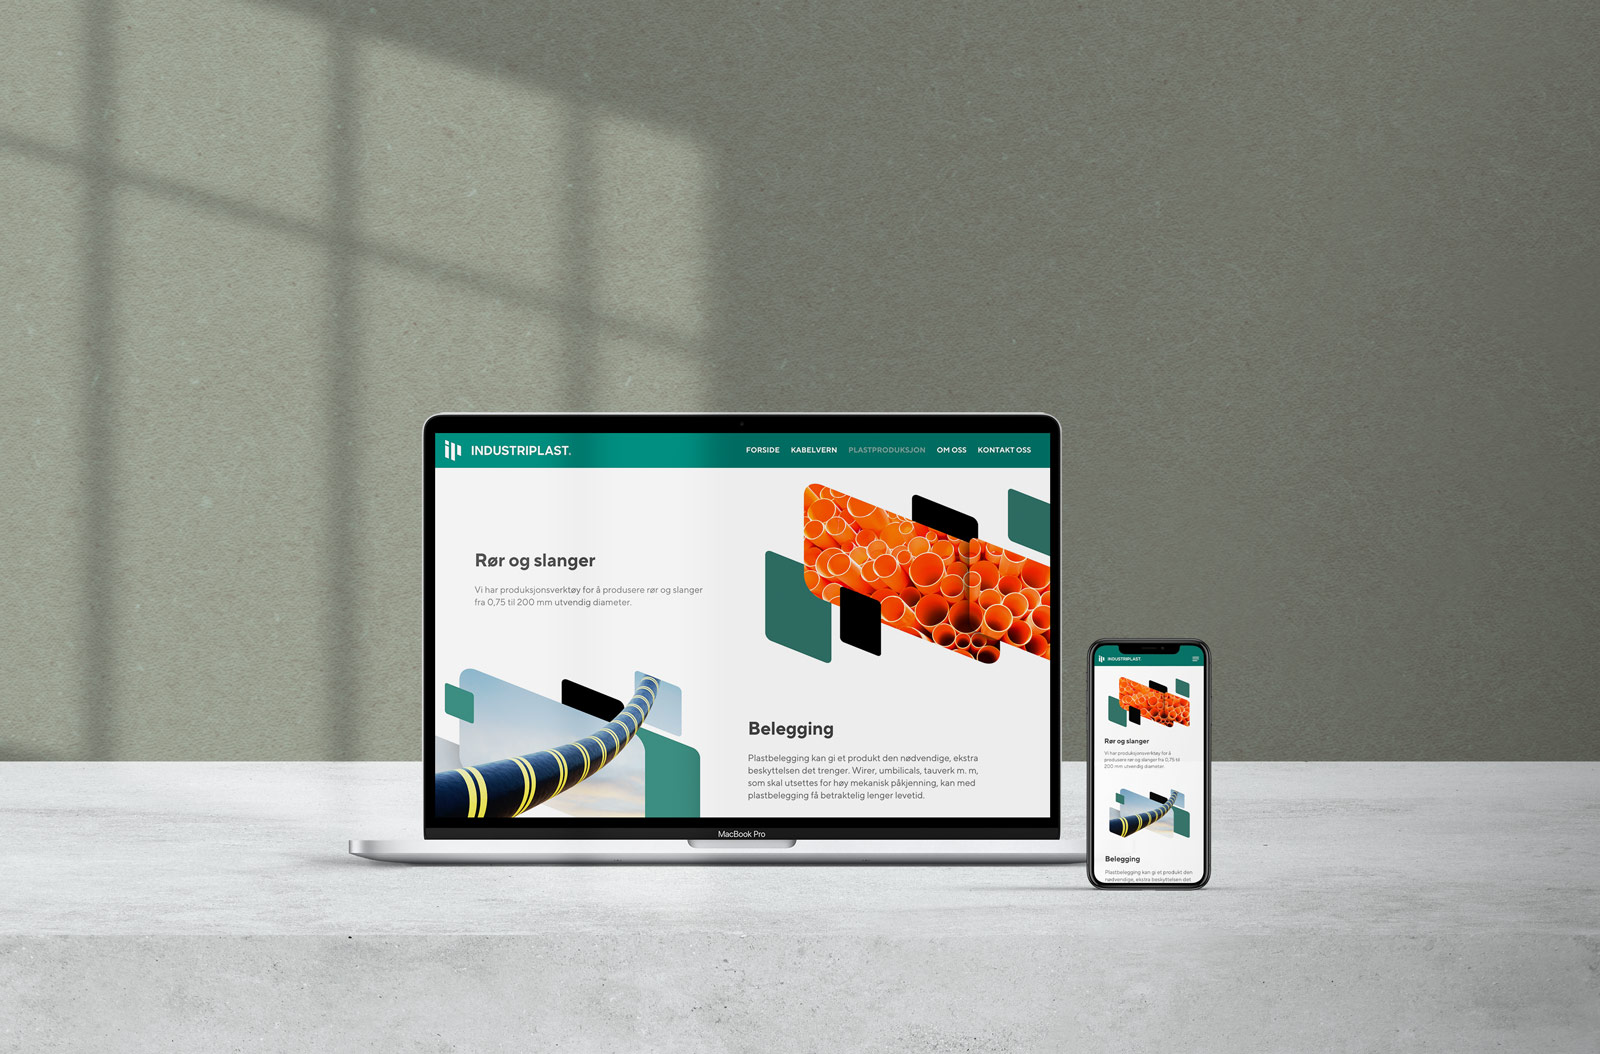 Industriplast webside